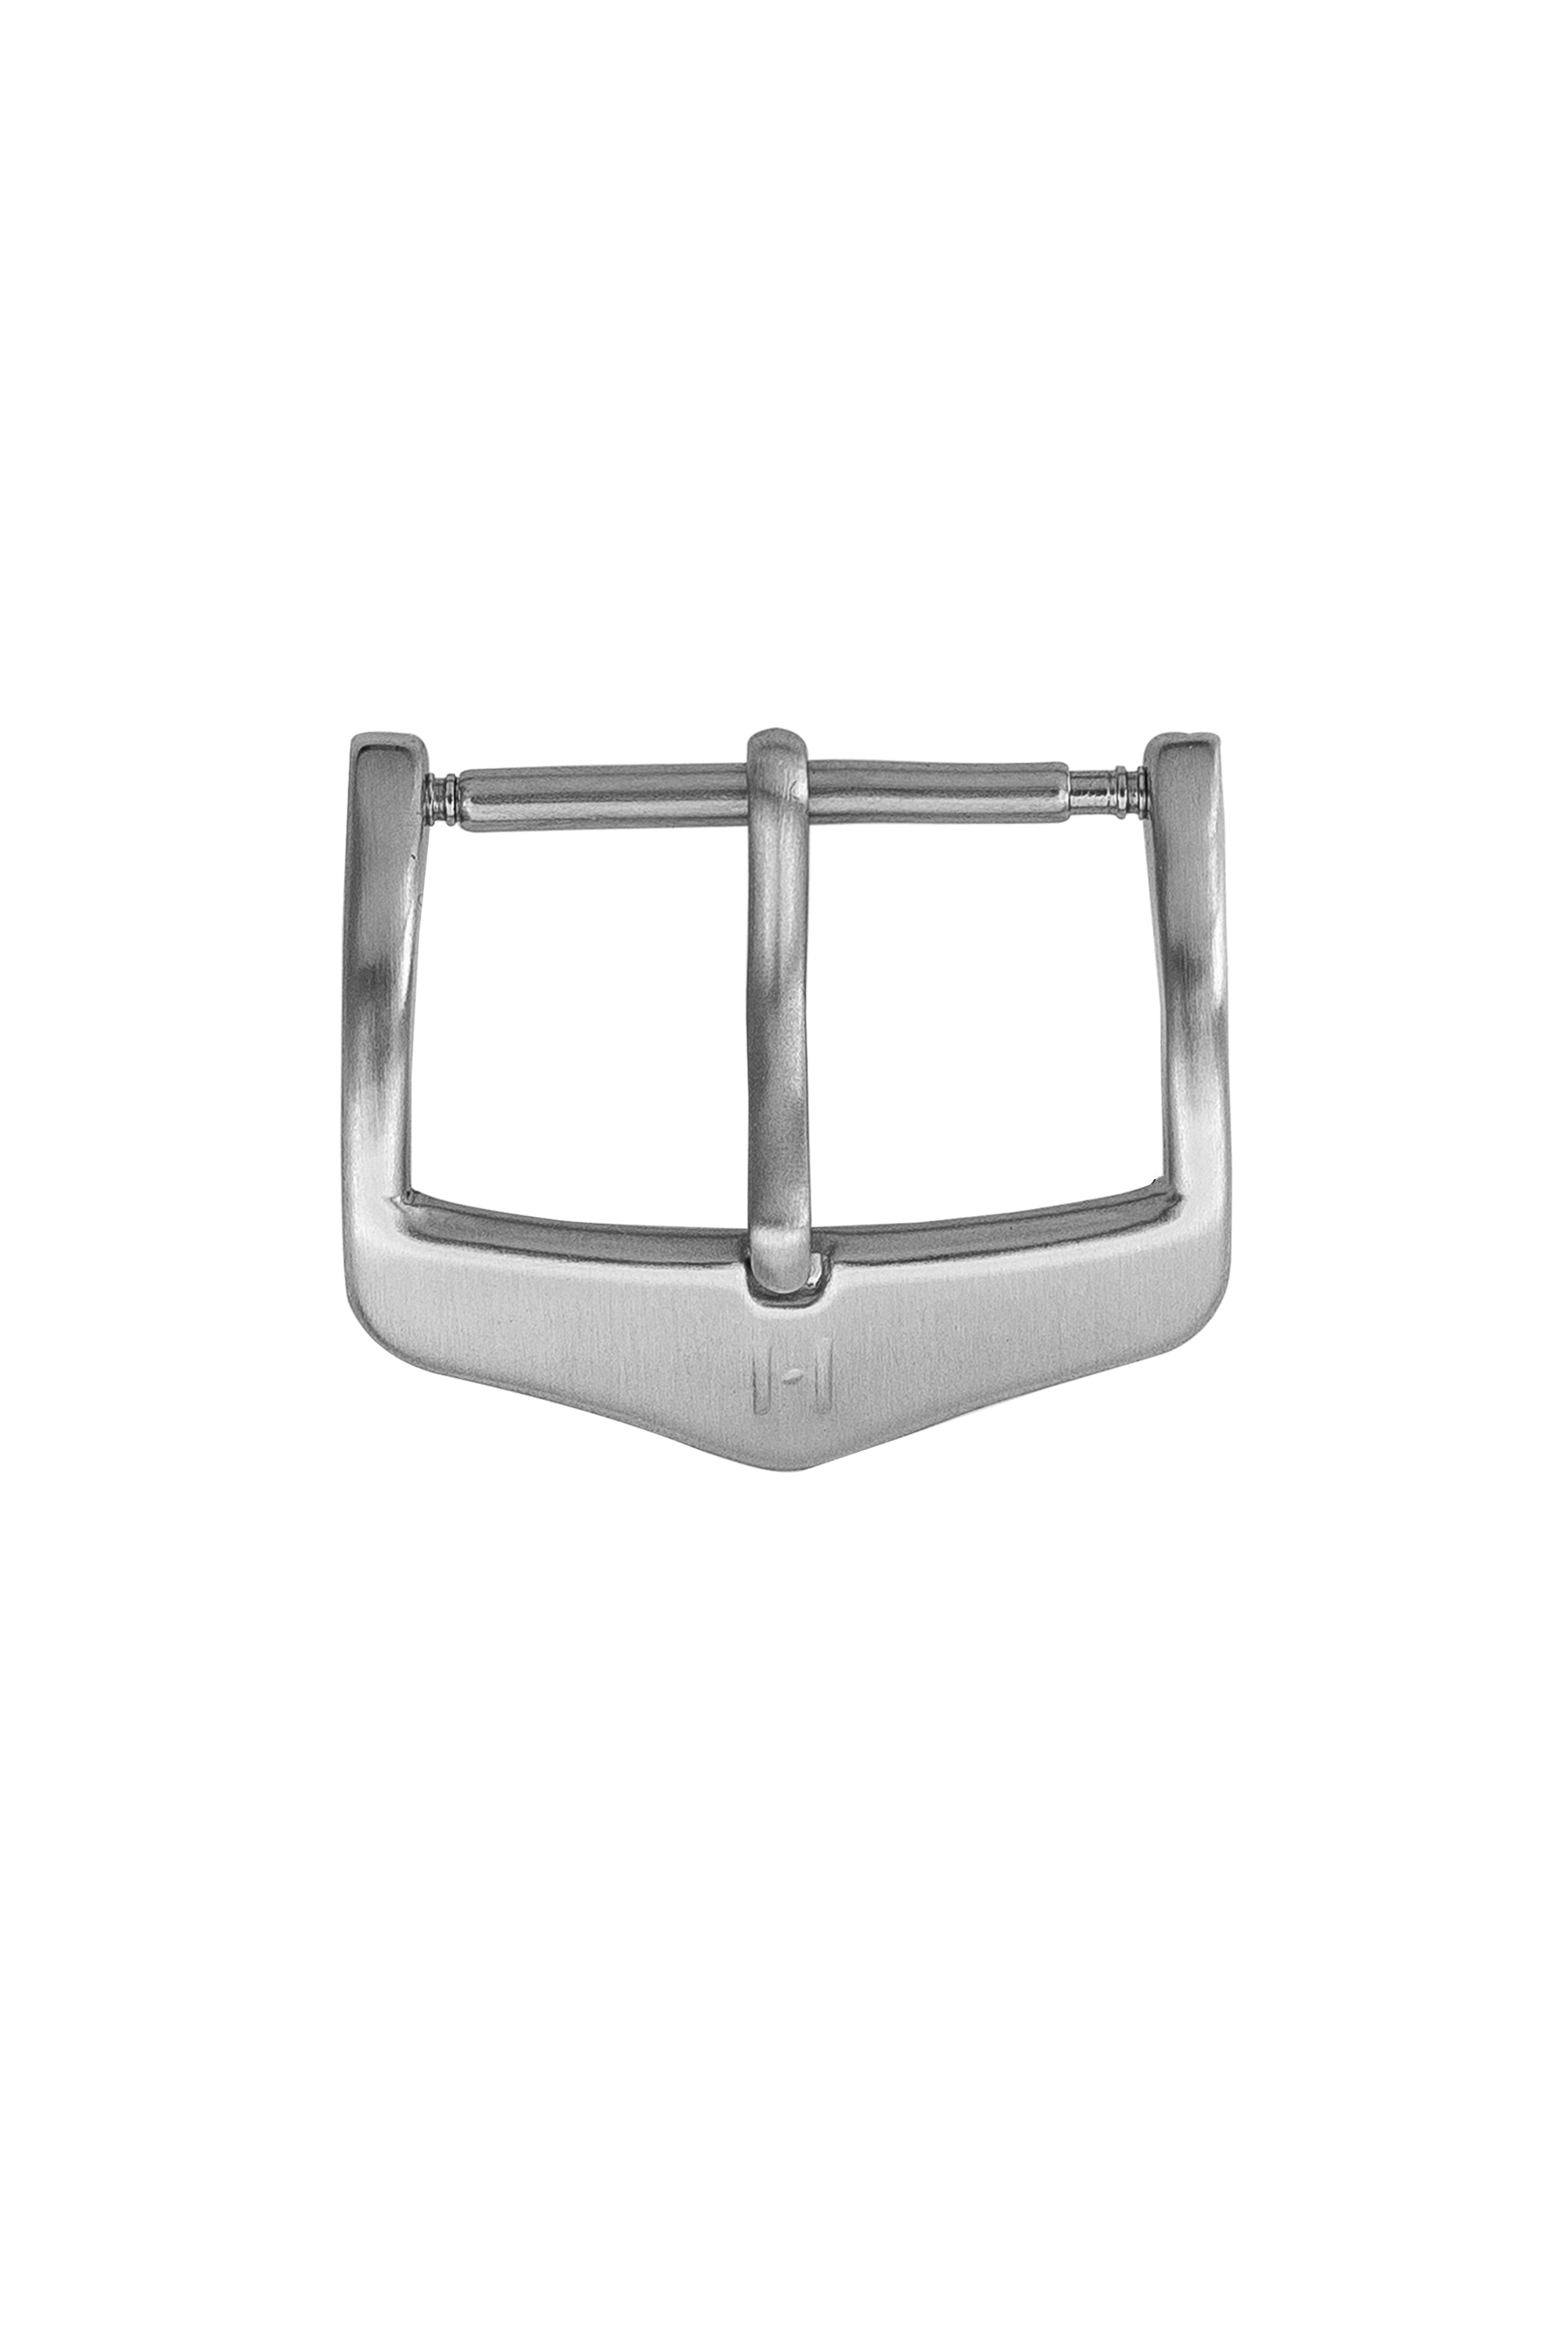 Hirsch H-Classic (HCB) Buckle in BRUSHED SILVER